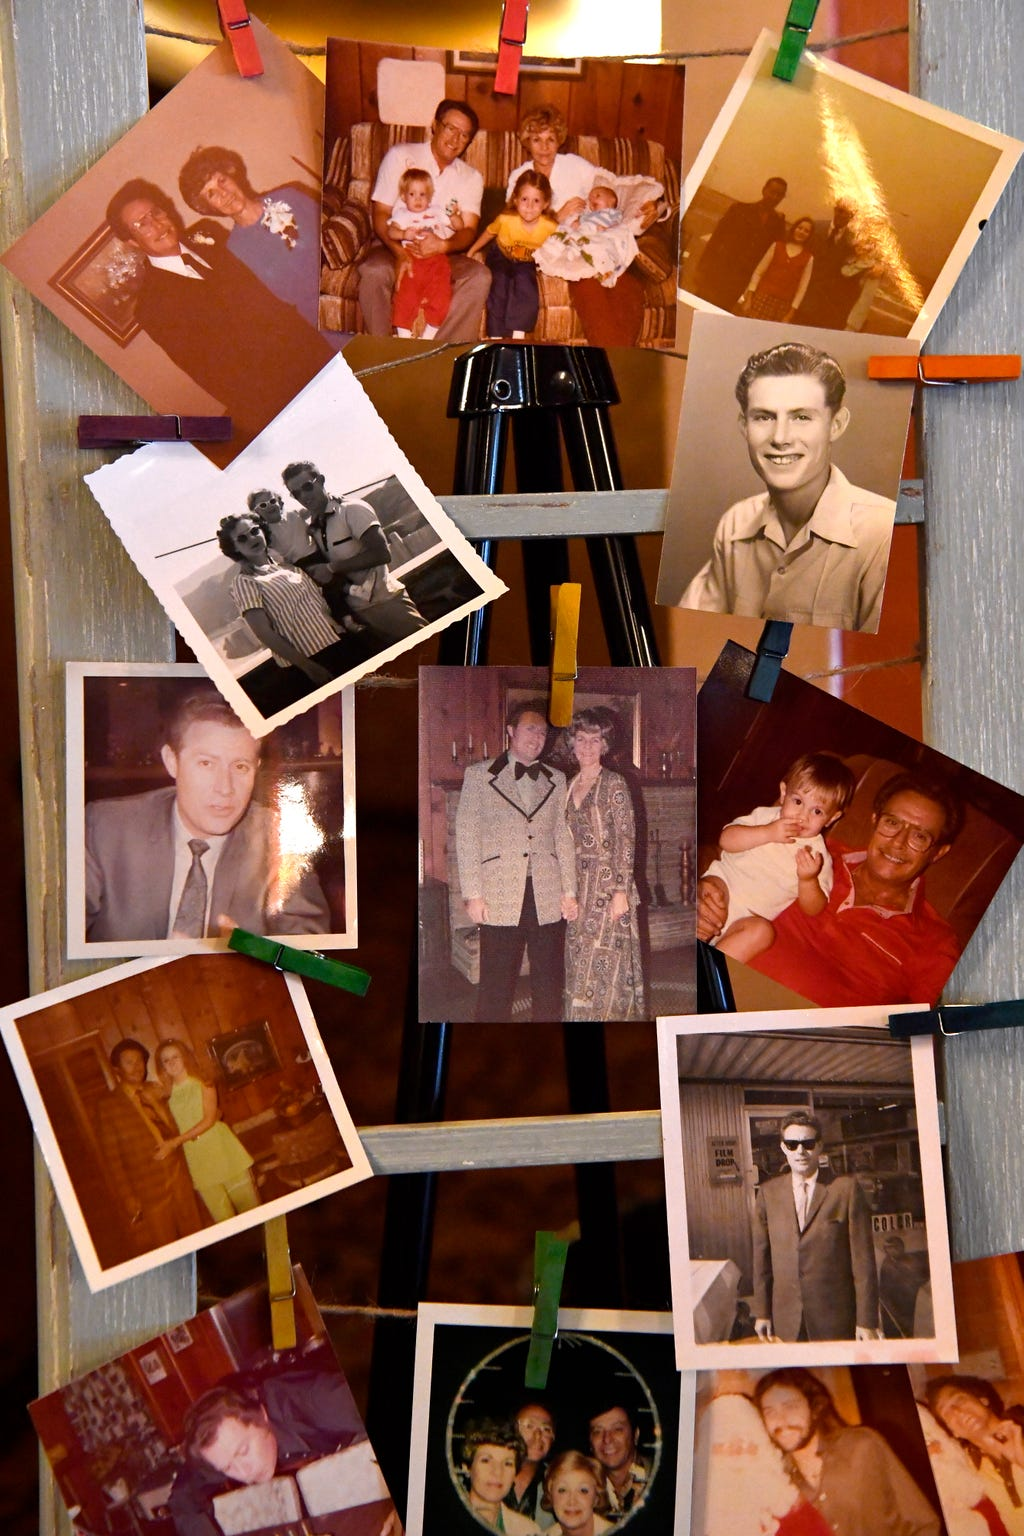 Photographs from Frank Sheffield's life decorate a display in the Paramount Theatre lobby Jan. 31.